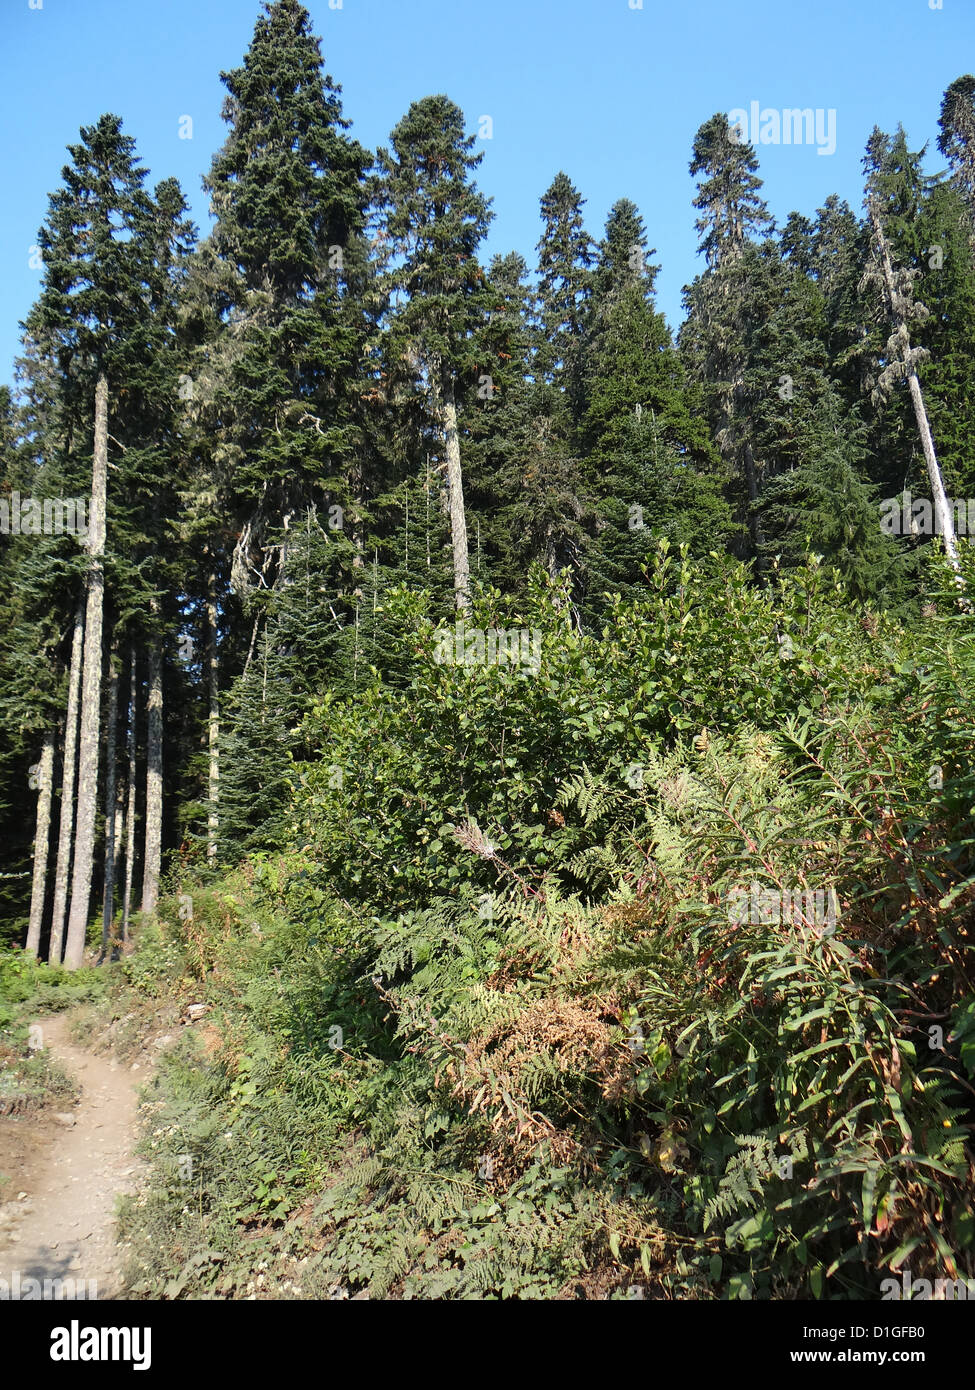 Trail along a forested ridge near Snoqualmie Pass, Washington  - Stock Image